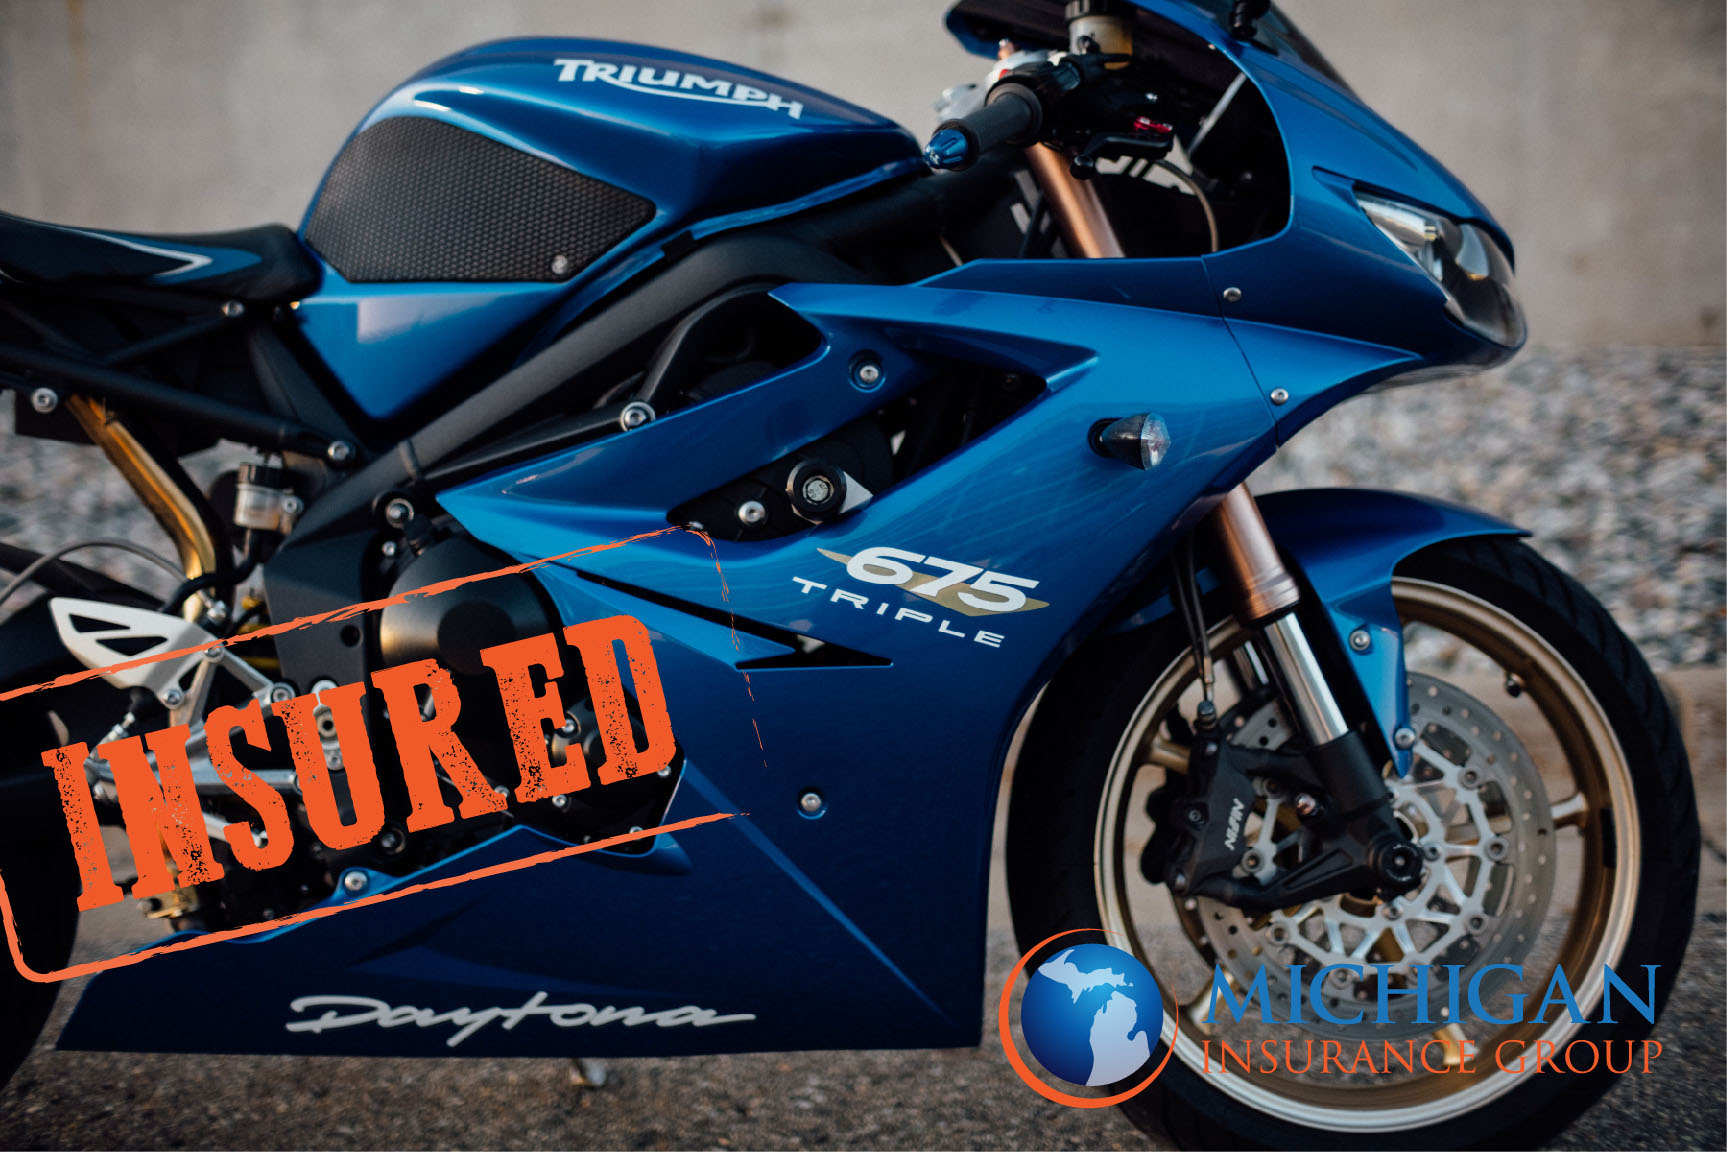 Real Reasons to Have Motorcycle Insurance